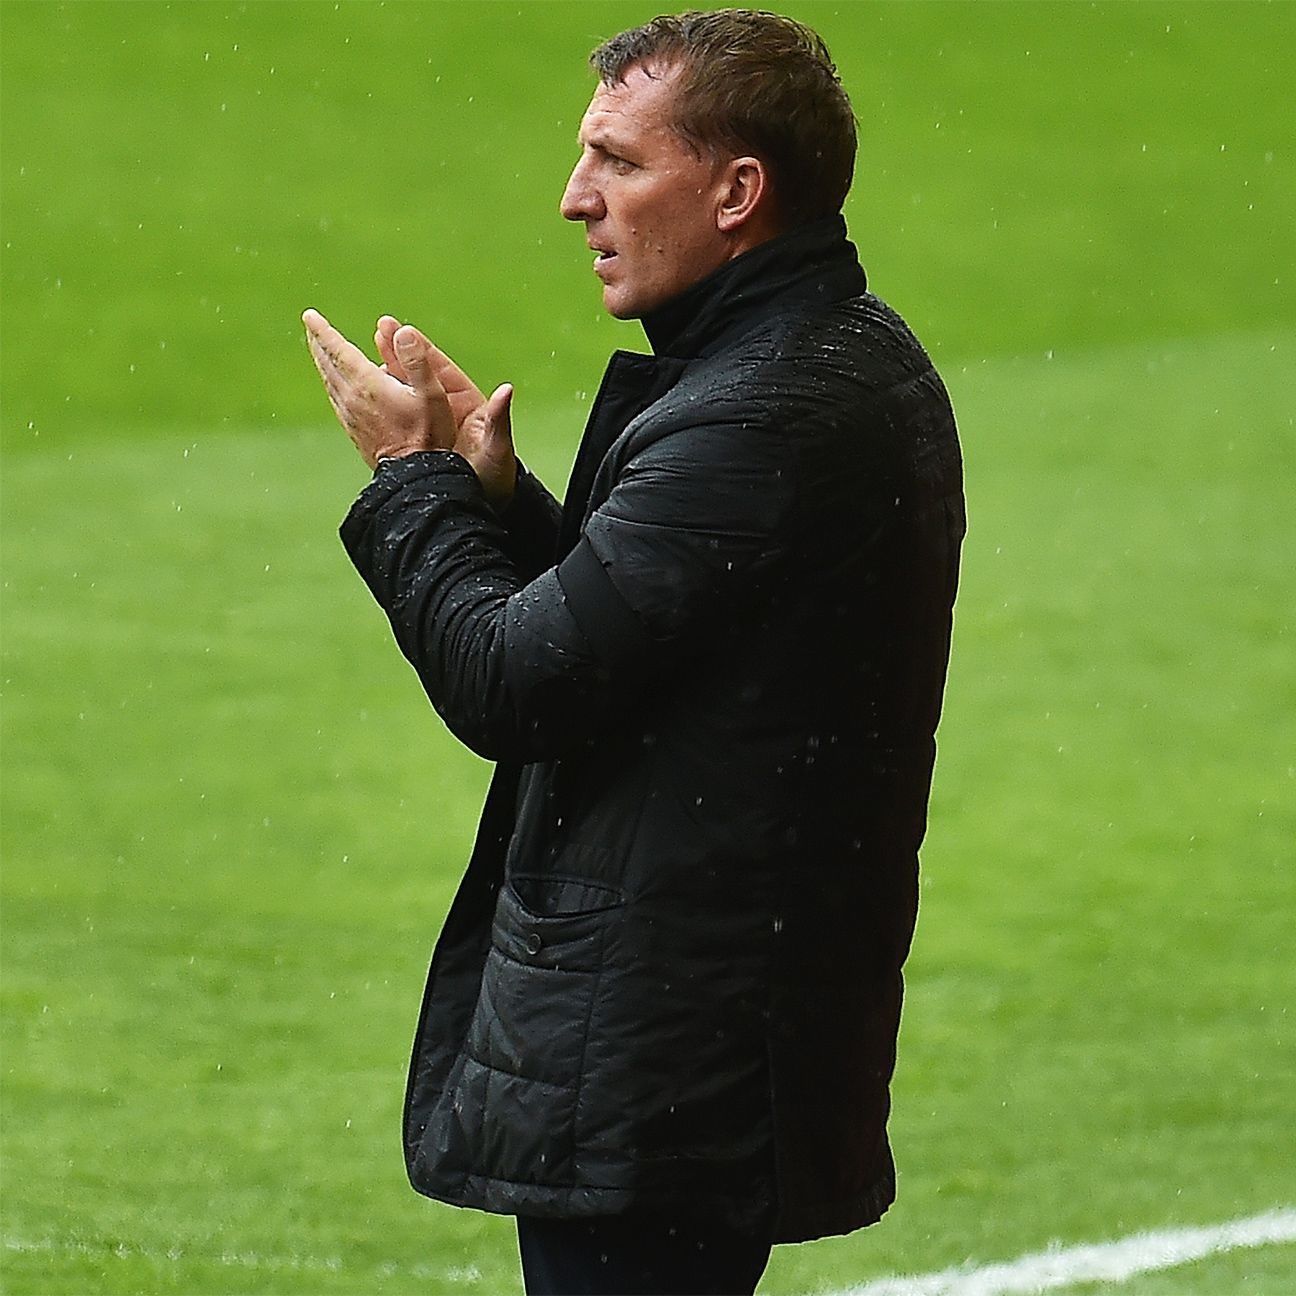 A season after nearly guiding Liverpool to the Premier League title, manager Brendan Rodgers could only muster a sixth-place finish in 2014-15.